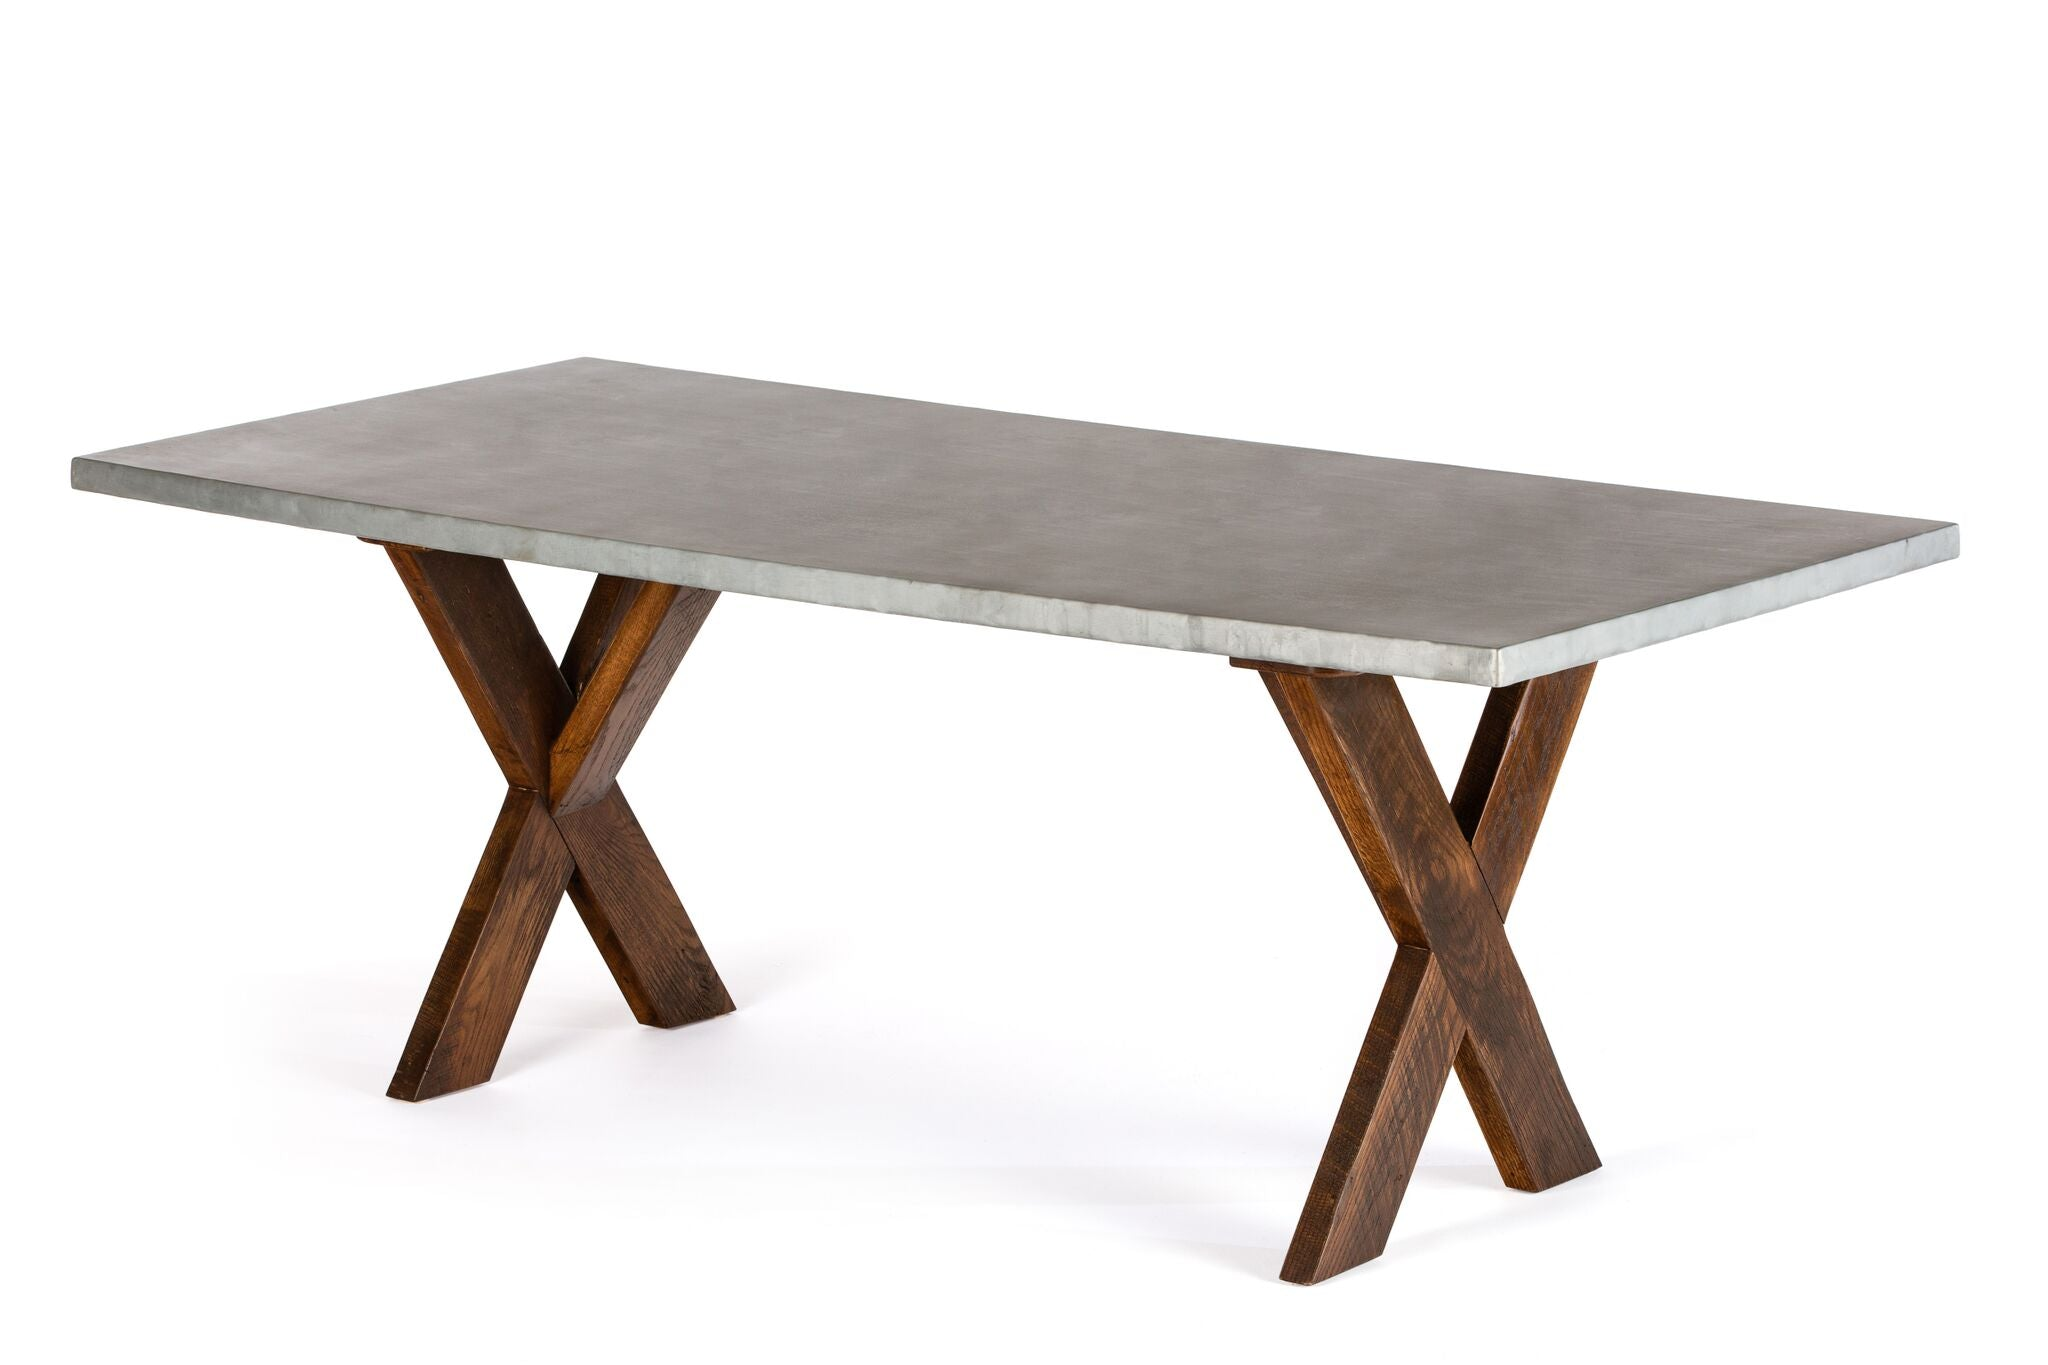 "Zinc Rectangular Table | X Base Trestle Table | CLASSIC | Weathered Grey on Reclaimed Oak | CUSTOM SIZE 72""L 32""W 30""H 